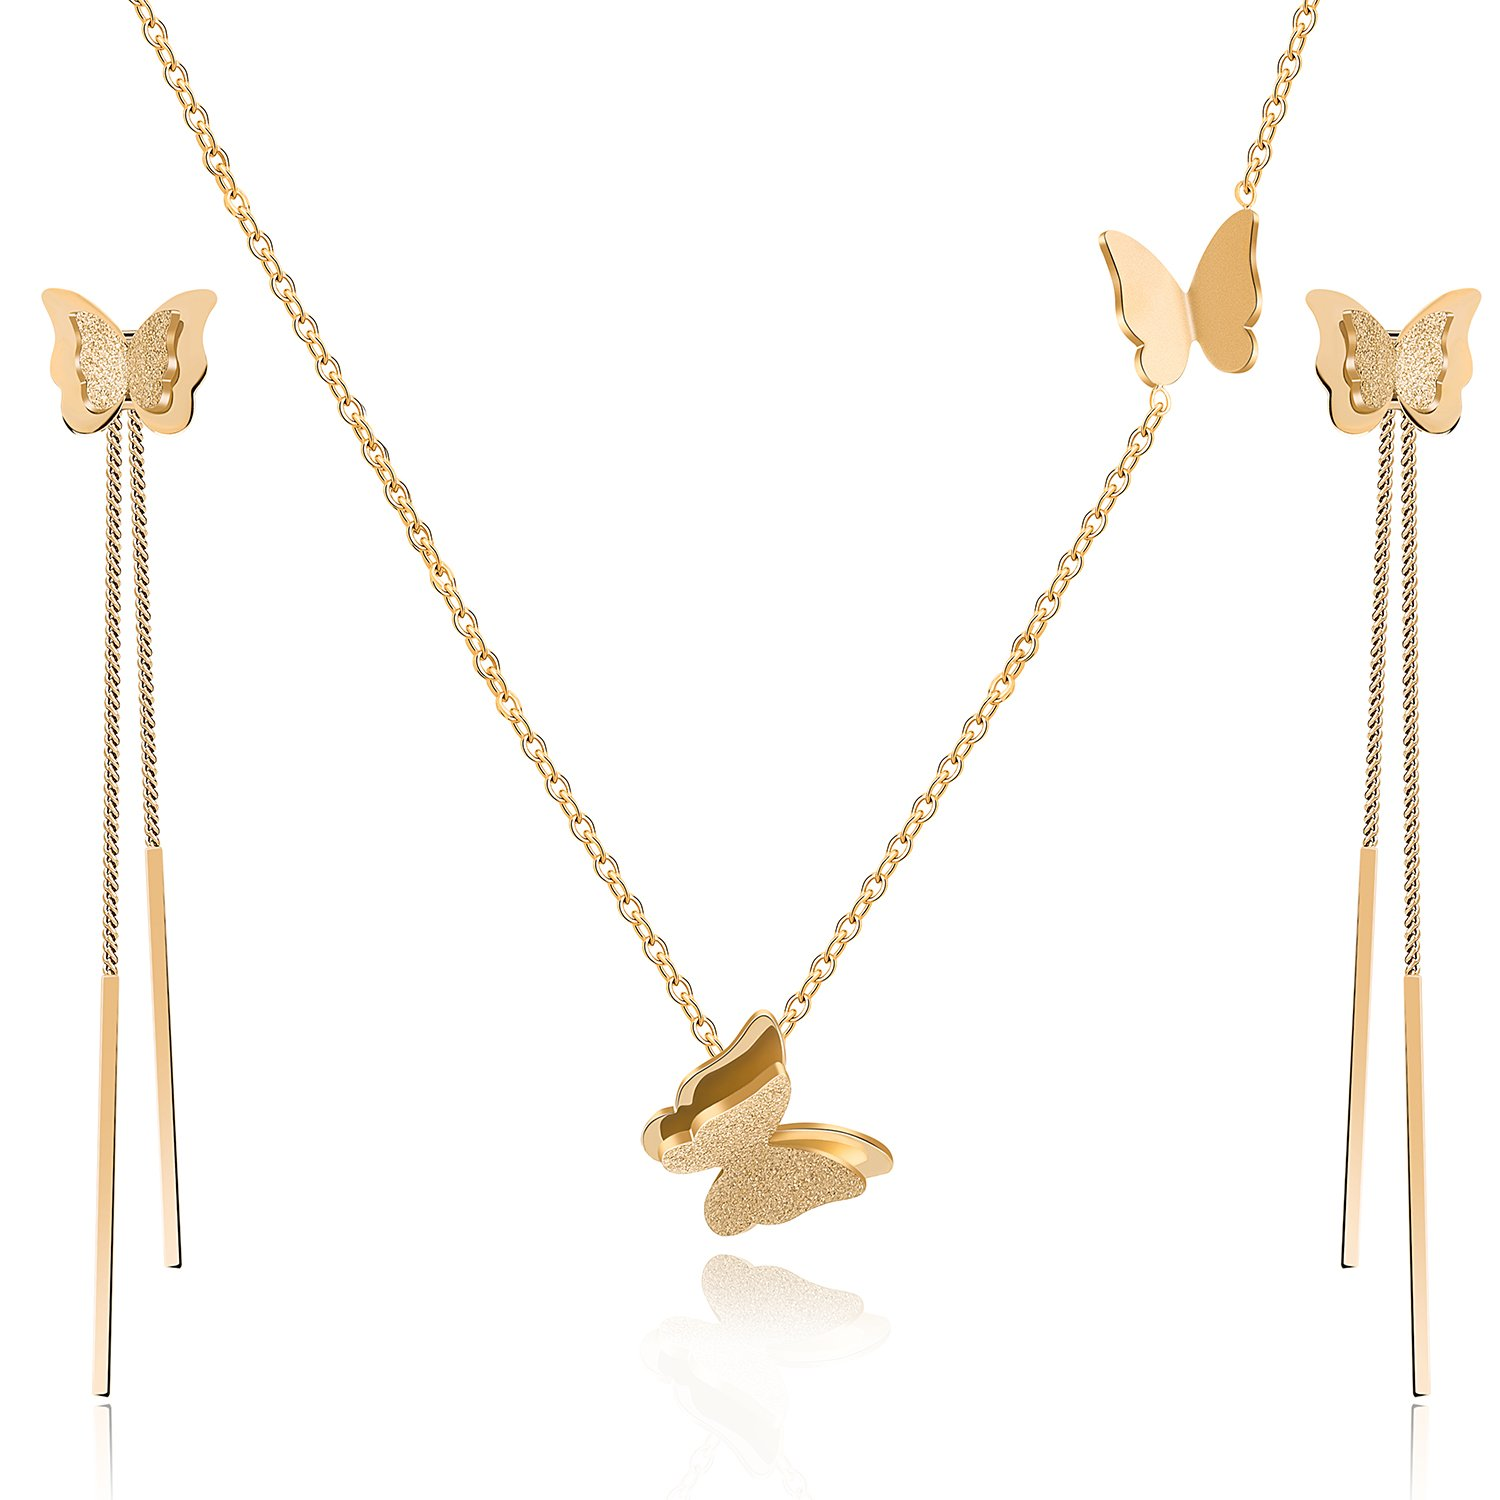 EVEVIC Stainless Steel Butterfly Necklace Earrings Set for Women Girls 14K Gold Plated Jewelry Sets